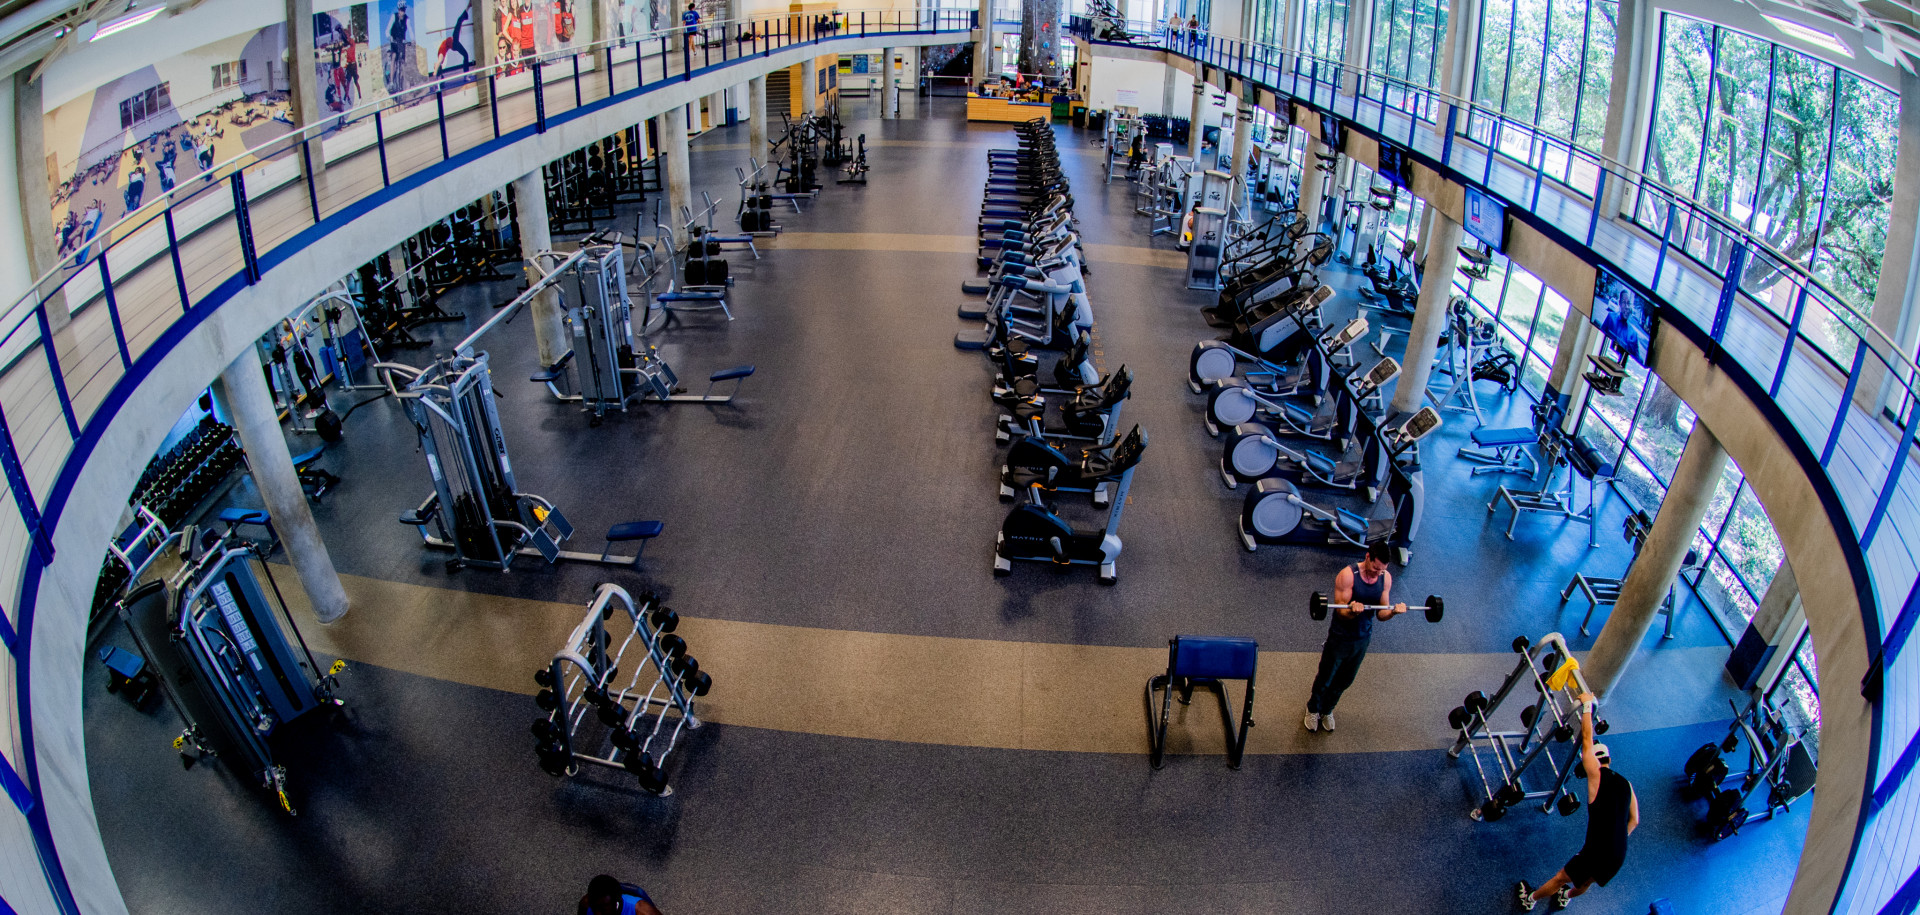 Overhead view of workout area